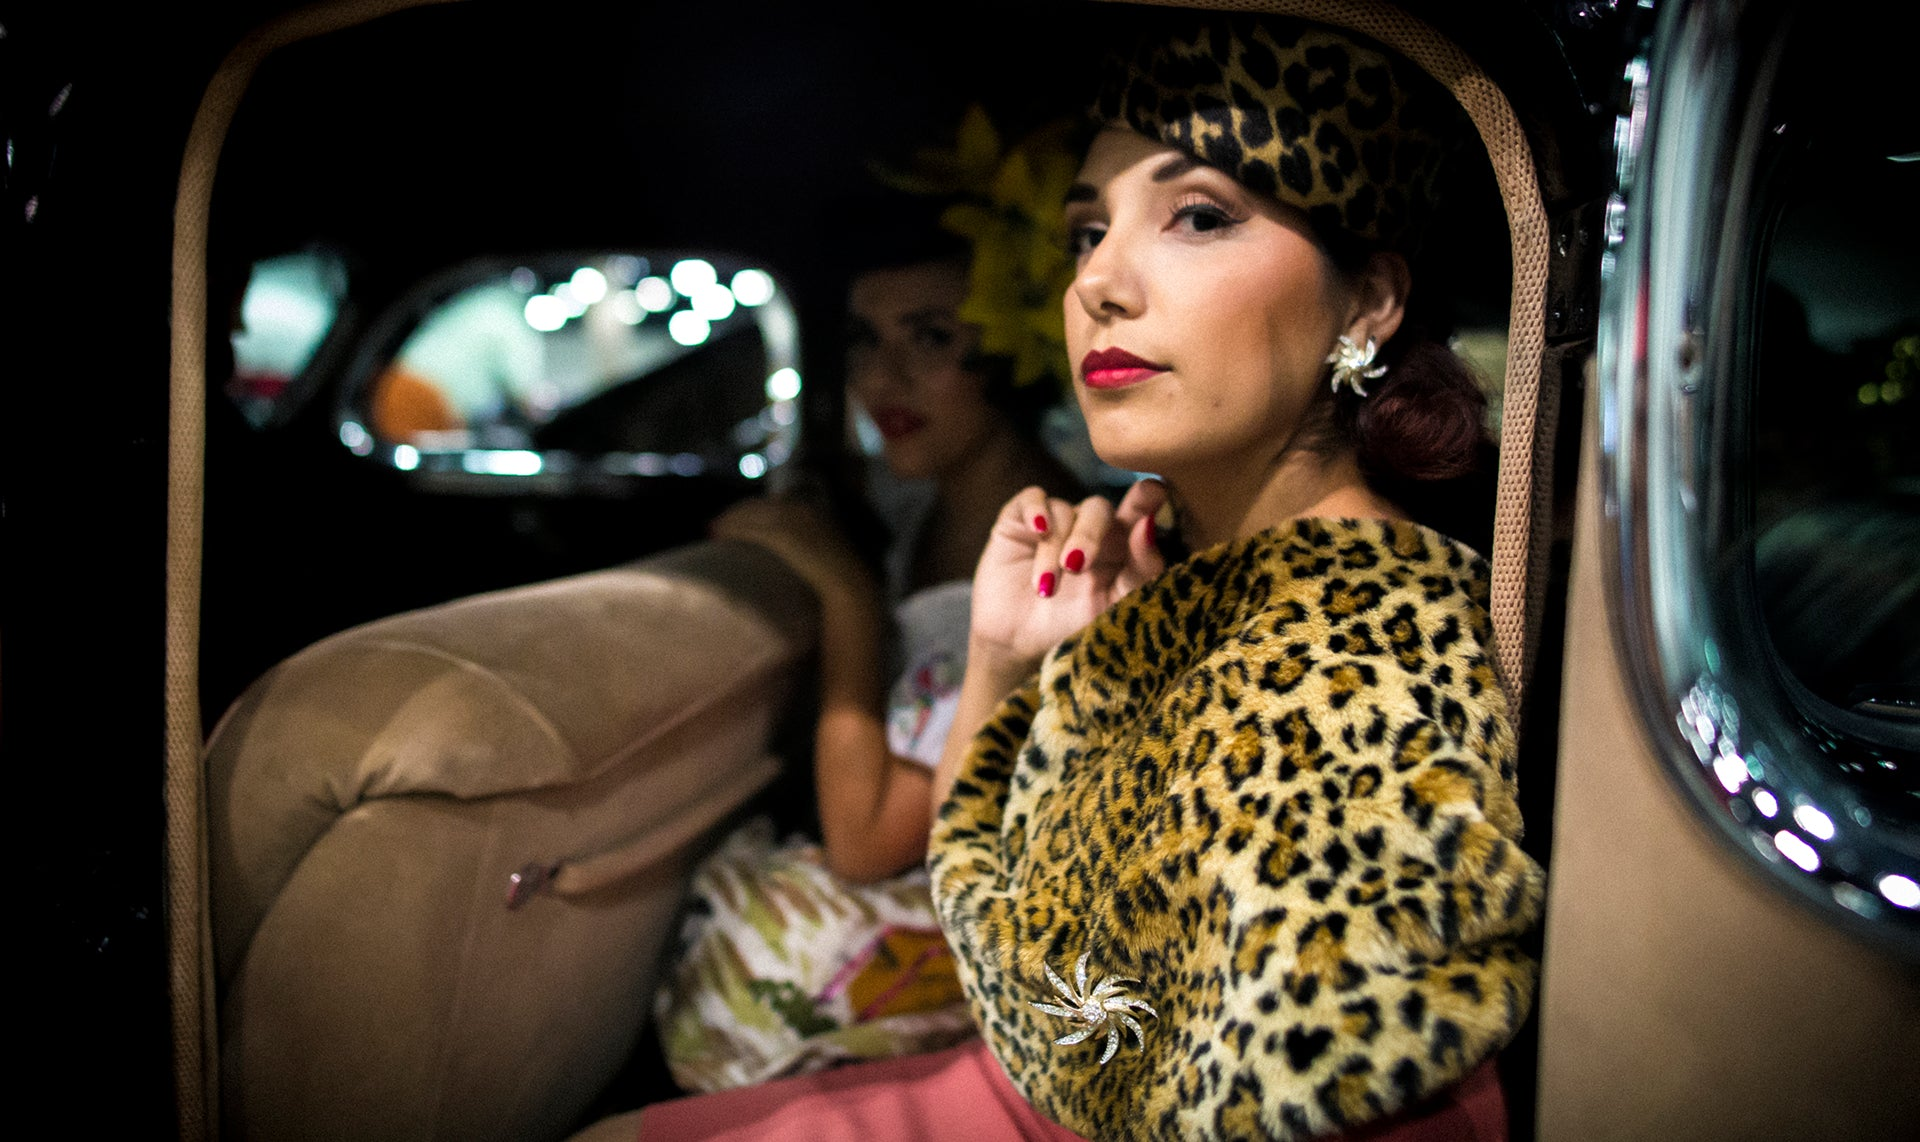 beautiful rucca sitting inside of vintage car